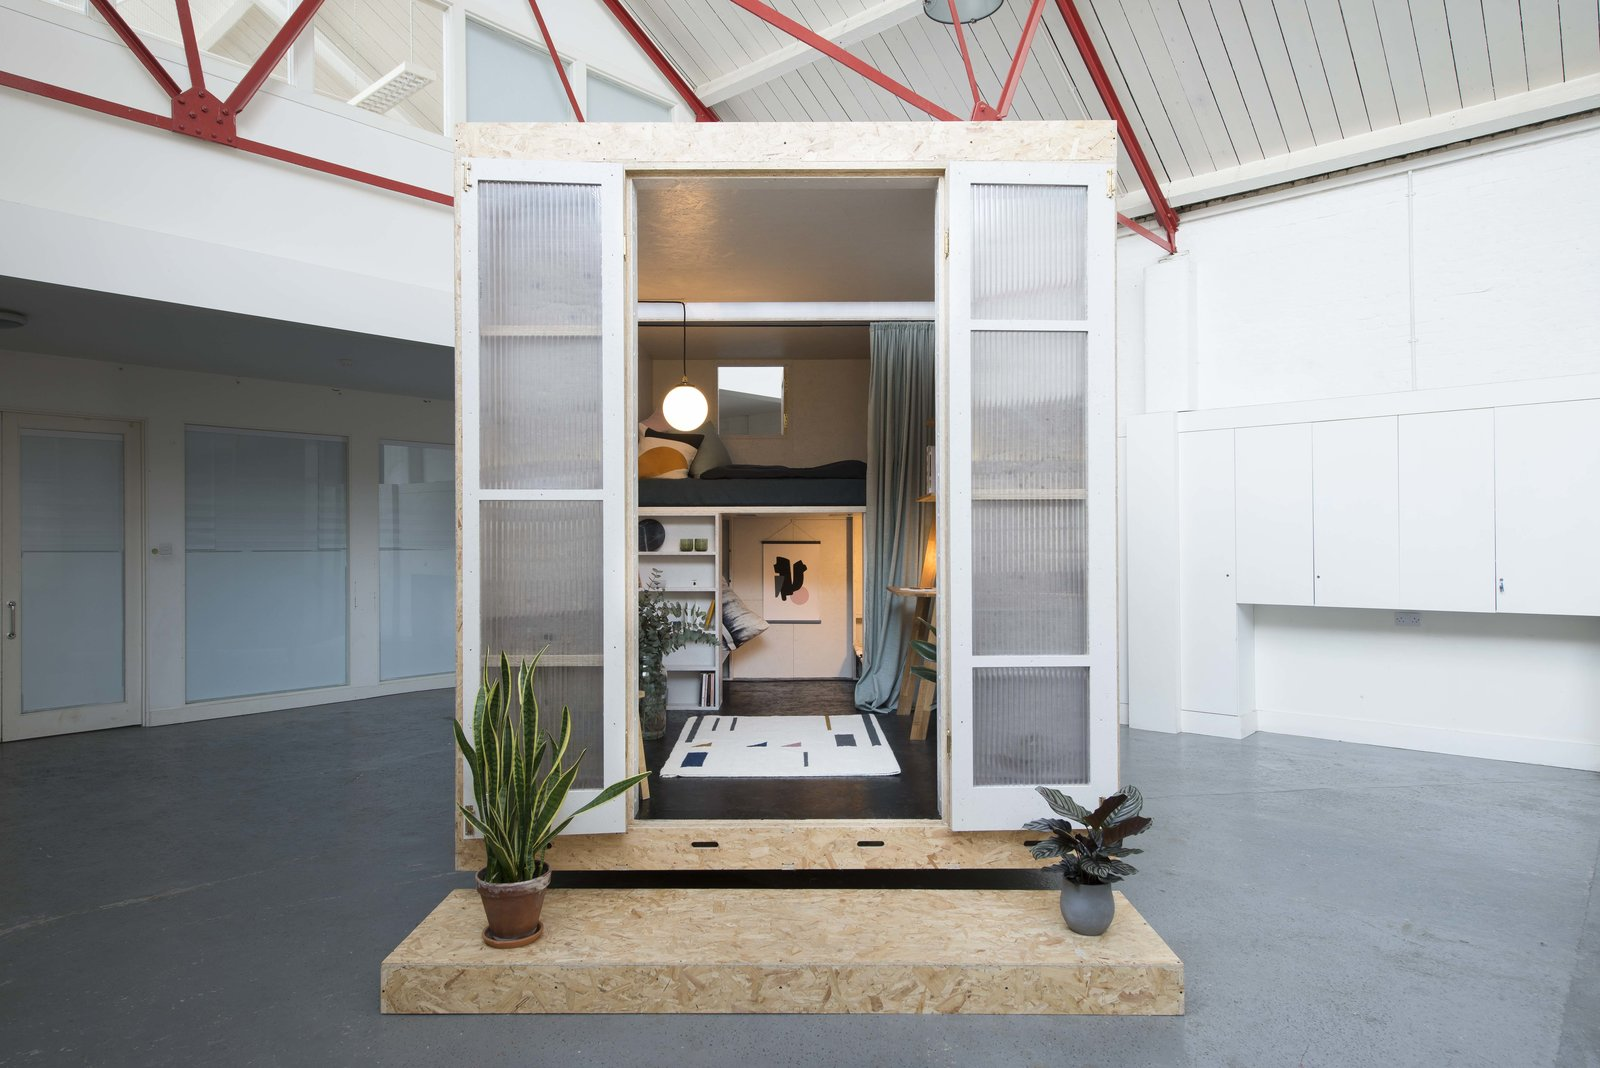 A New Concept For Modular, Affordable Housing Is Coming to London's Vacant Buildings - Photo 1 of 9